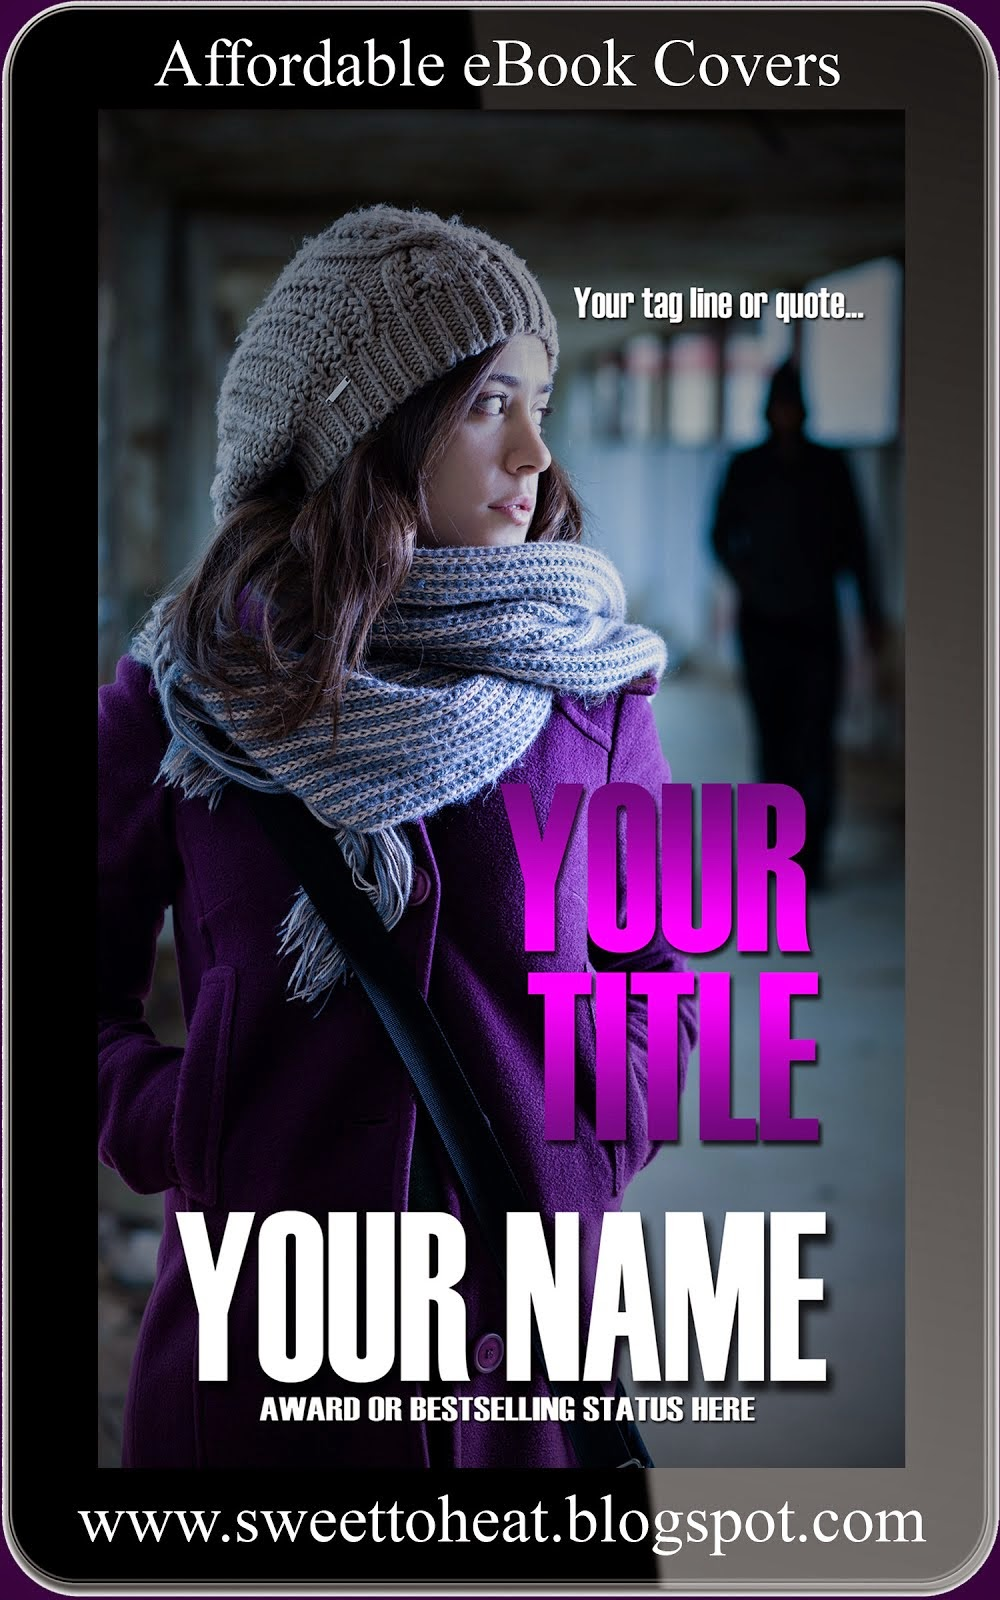 Need an eBook Cover?